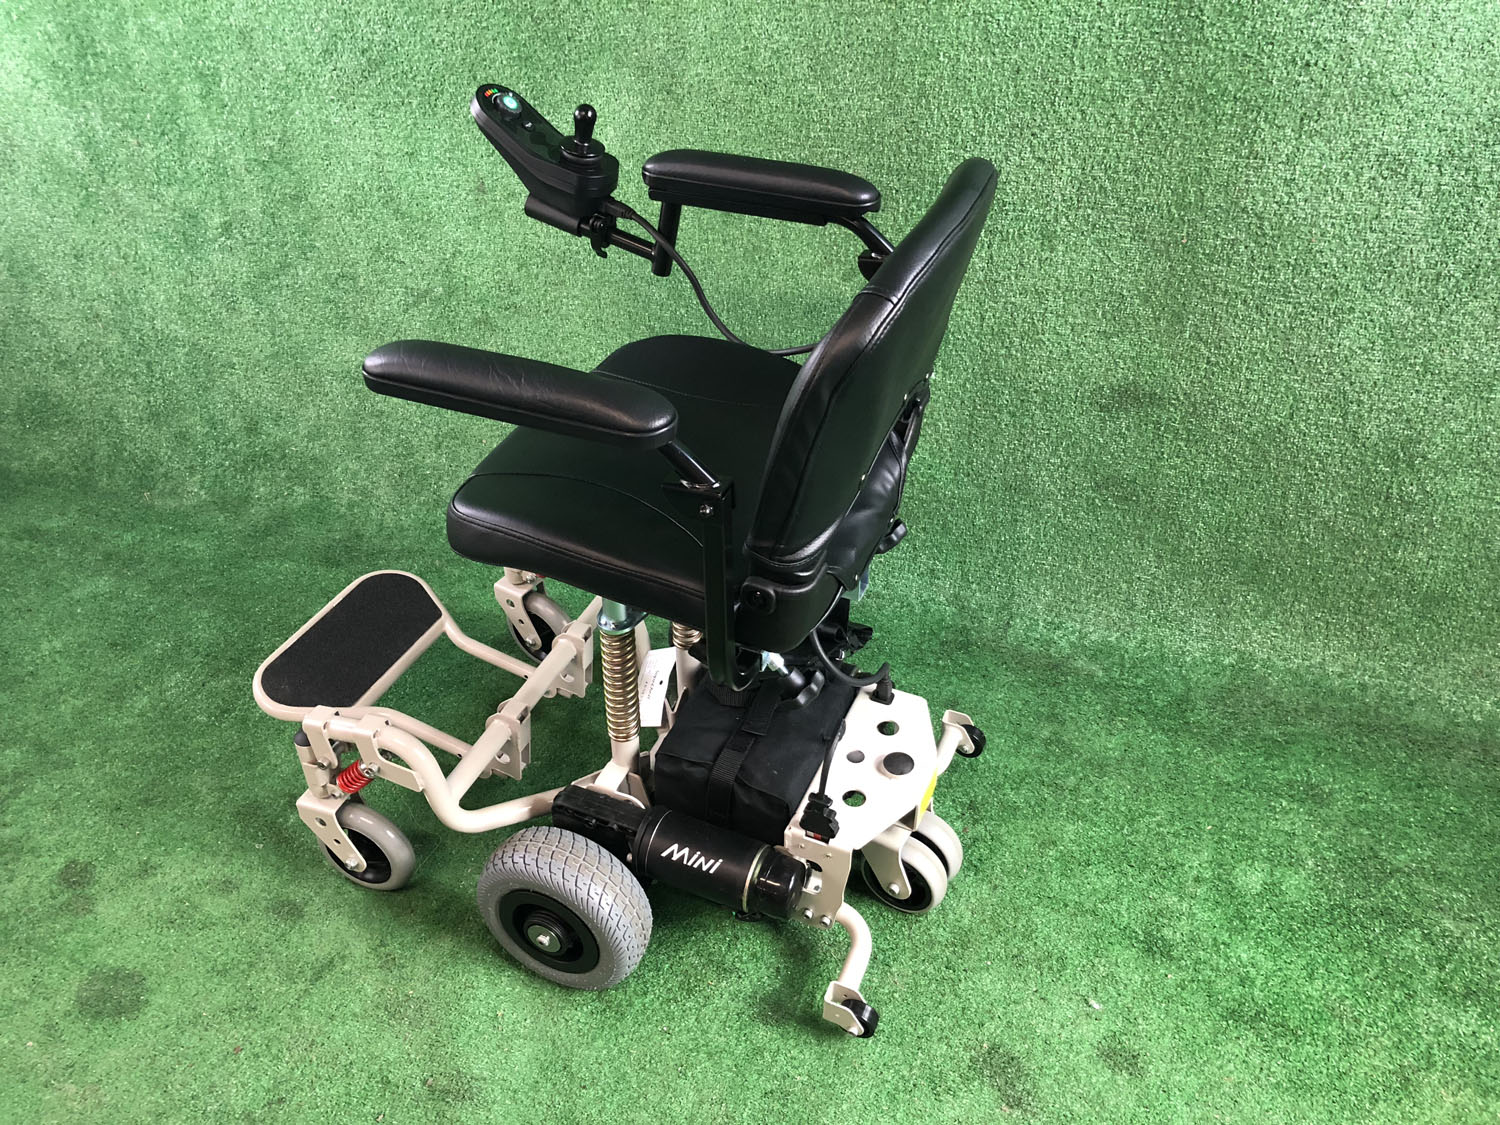 New SupaChair Mini Lightweight Transportable Powerchair with Suspension